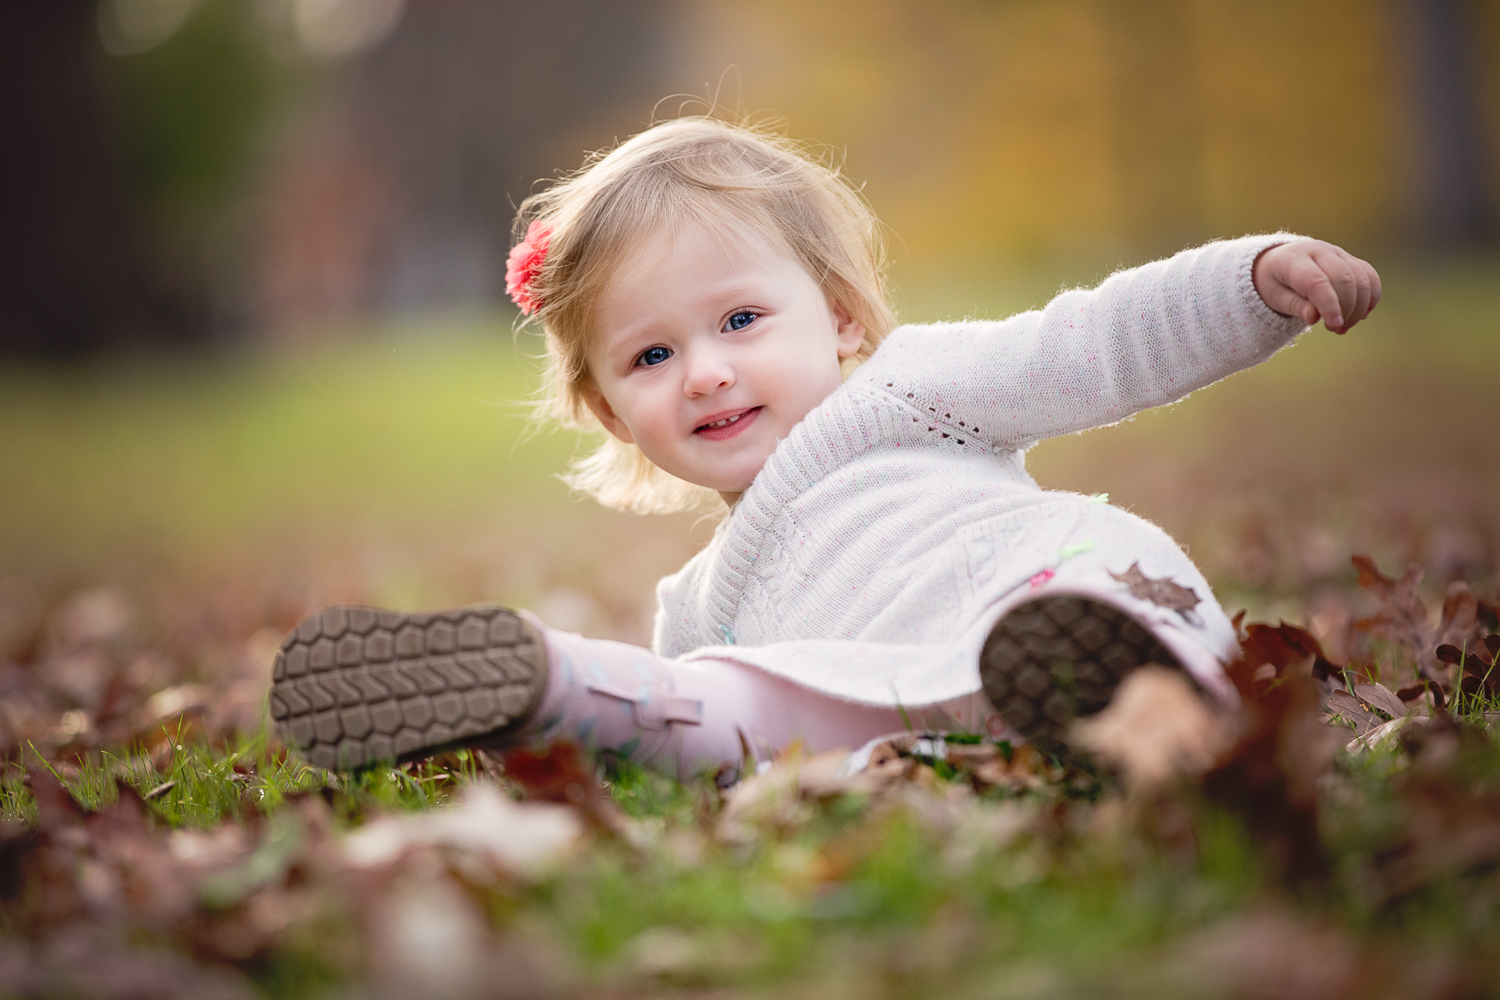 Fall photo of a little girl playing on the ground and falling over